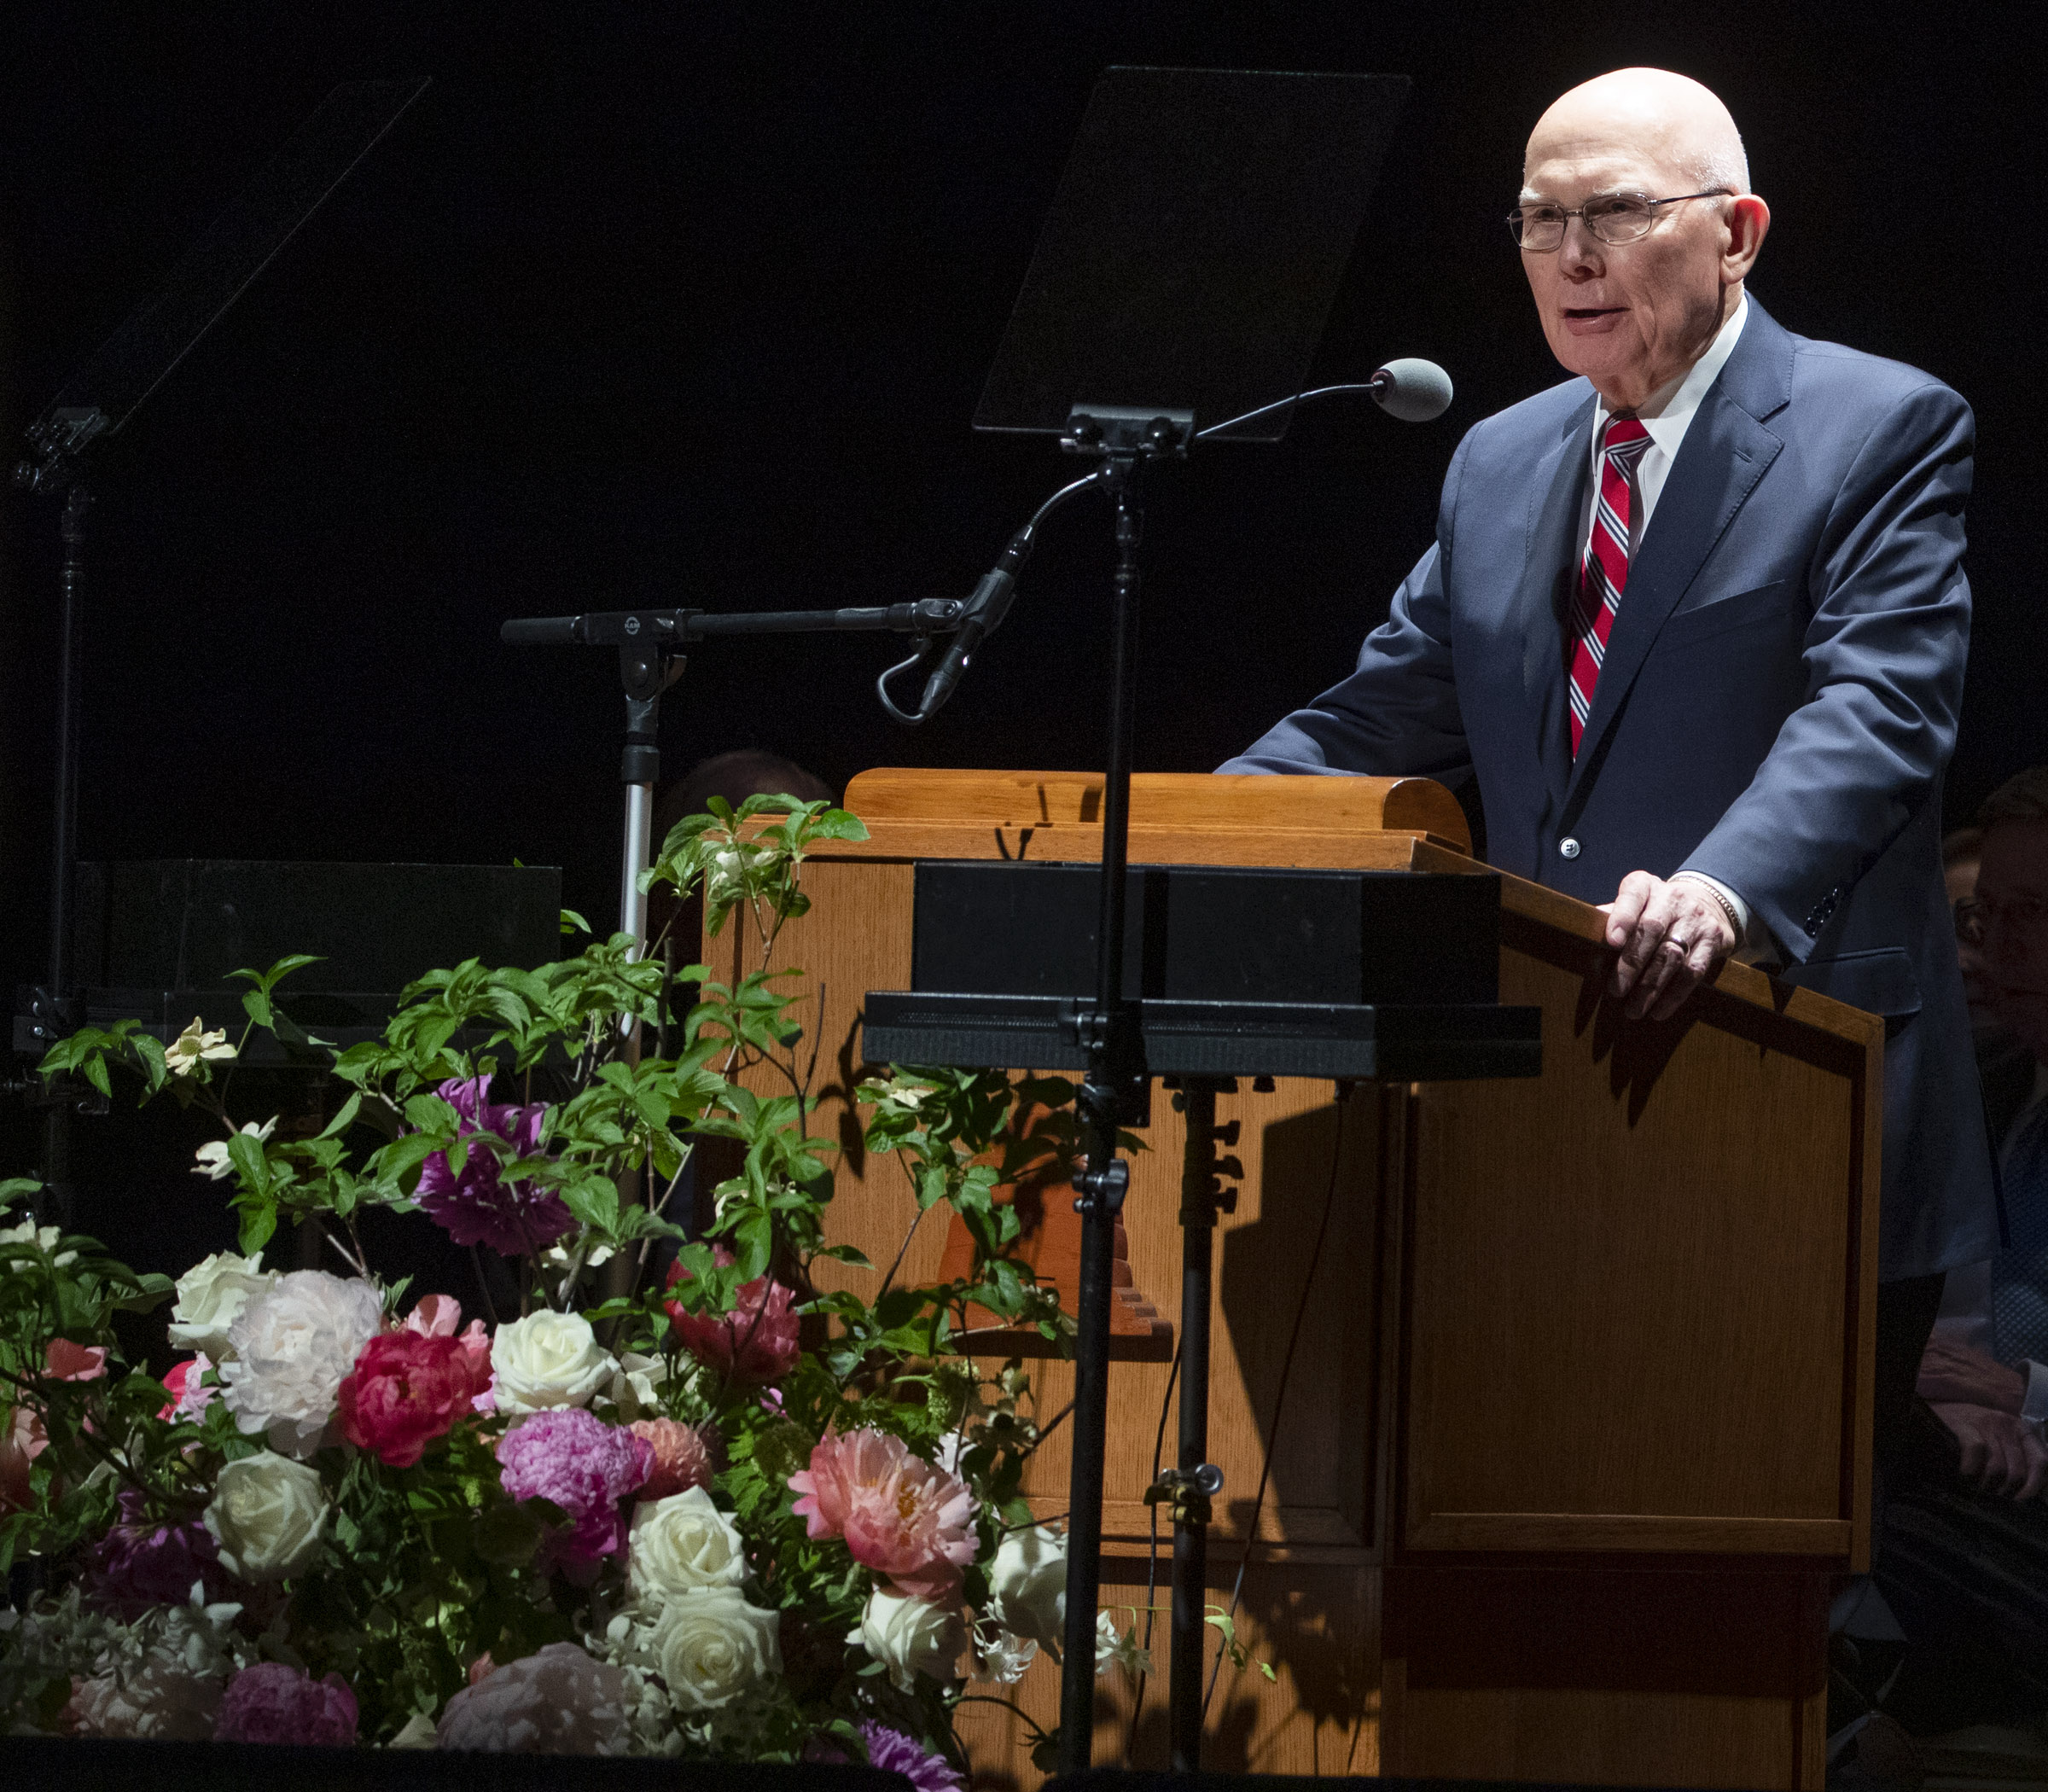 President Dallin H. Oaks, first counselor in the First Presidency, speaks to youth during a devotional at the Interstake Center on the Oakland California Temple grounds on Saturday, June 15, 2019.